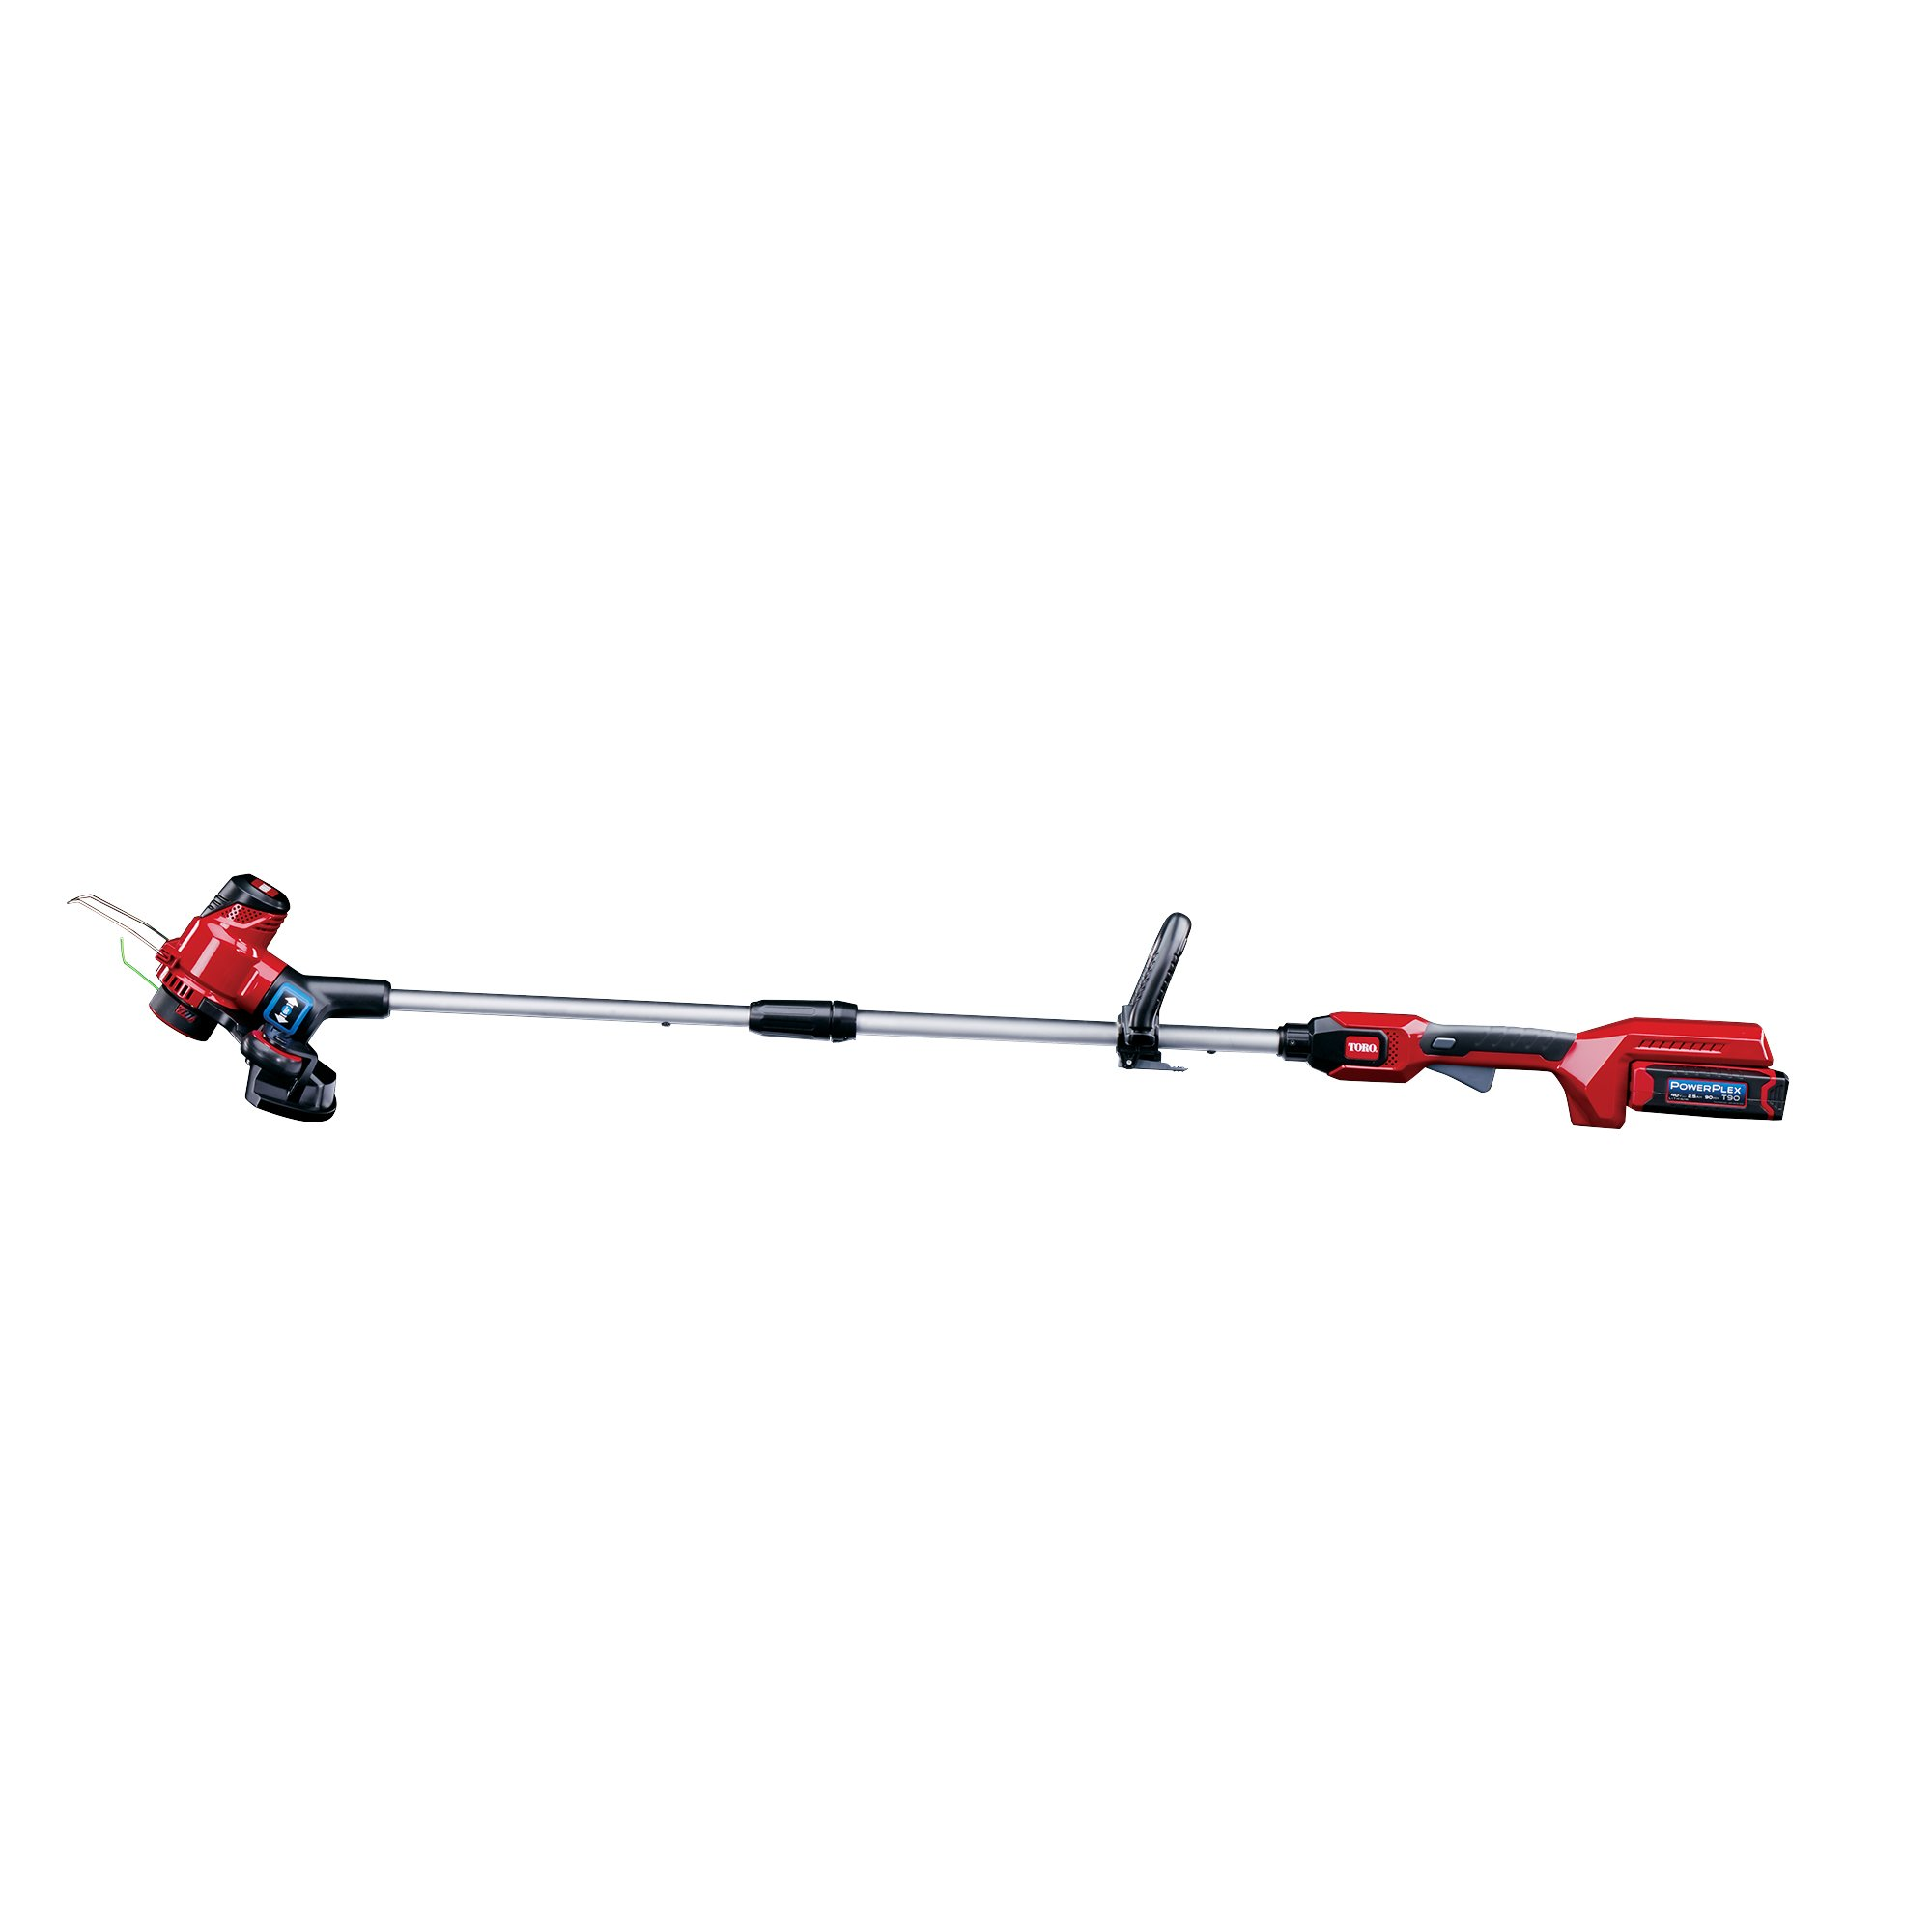 Toro PowerPlex 51481 40V MAX Lithium Ion 13'' Cordless String Trimmer/Edger, 2.5 Ah Battery & Charger Included